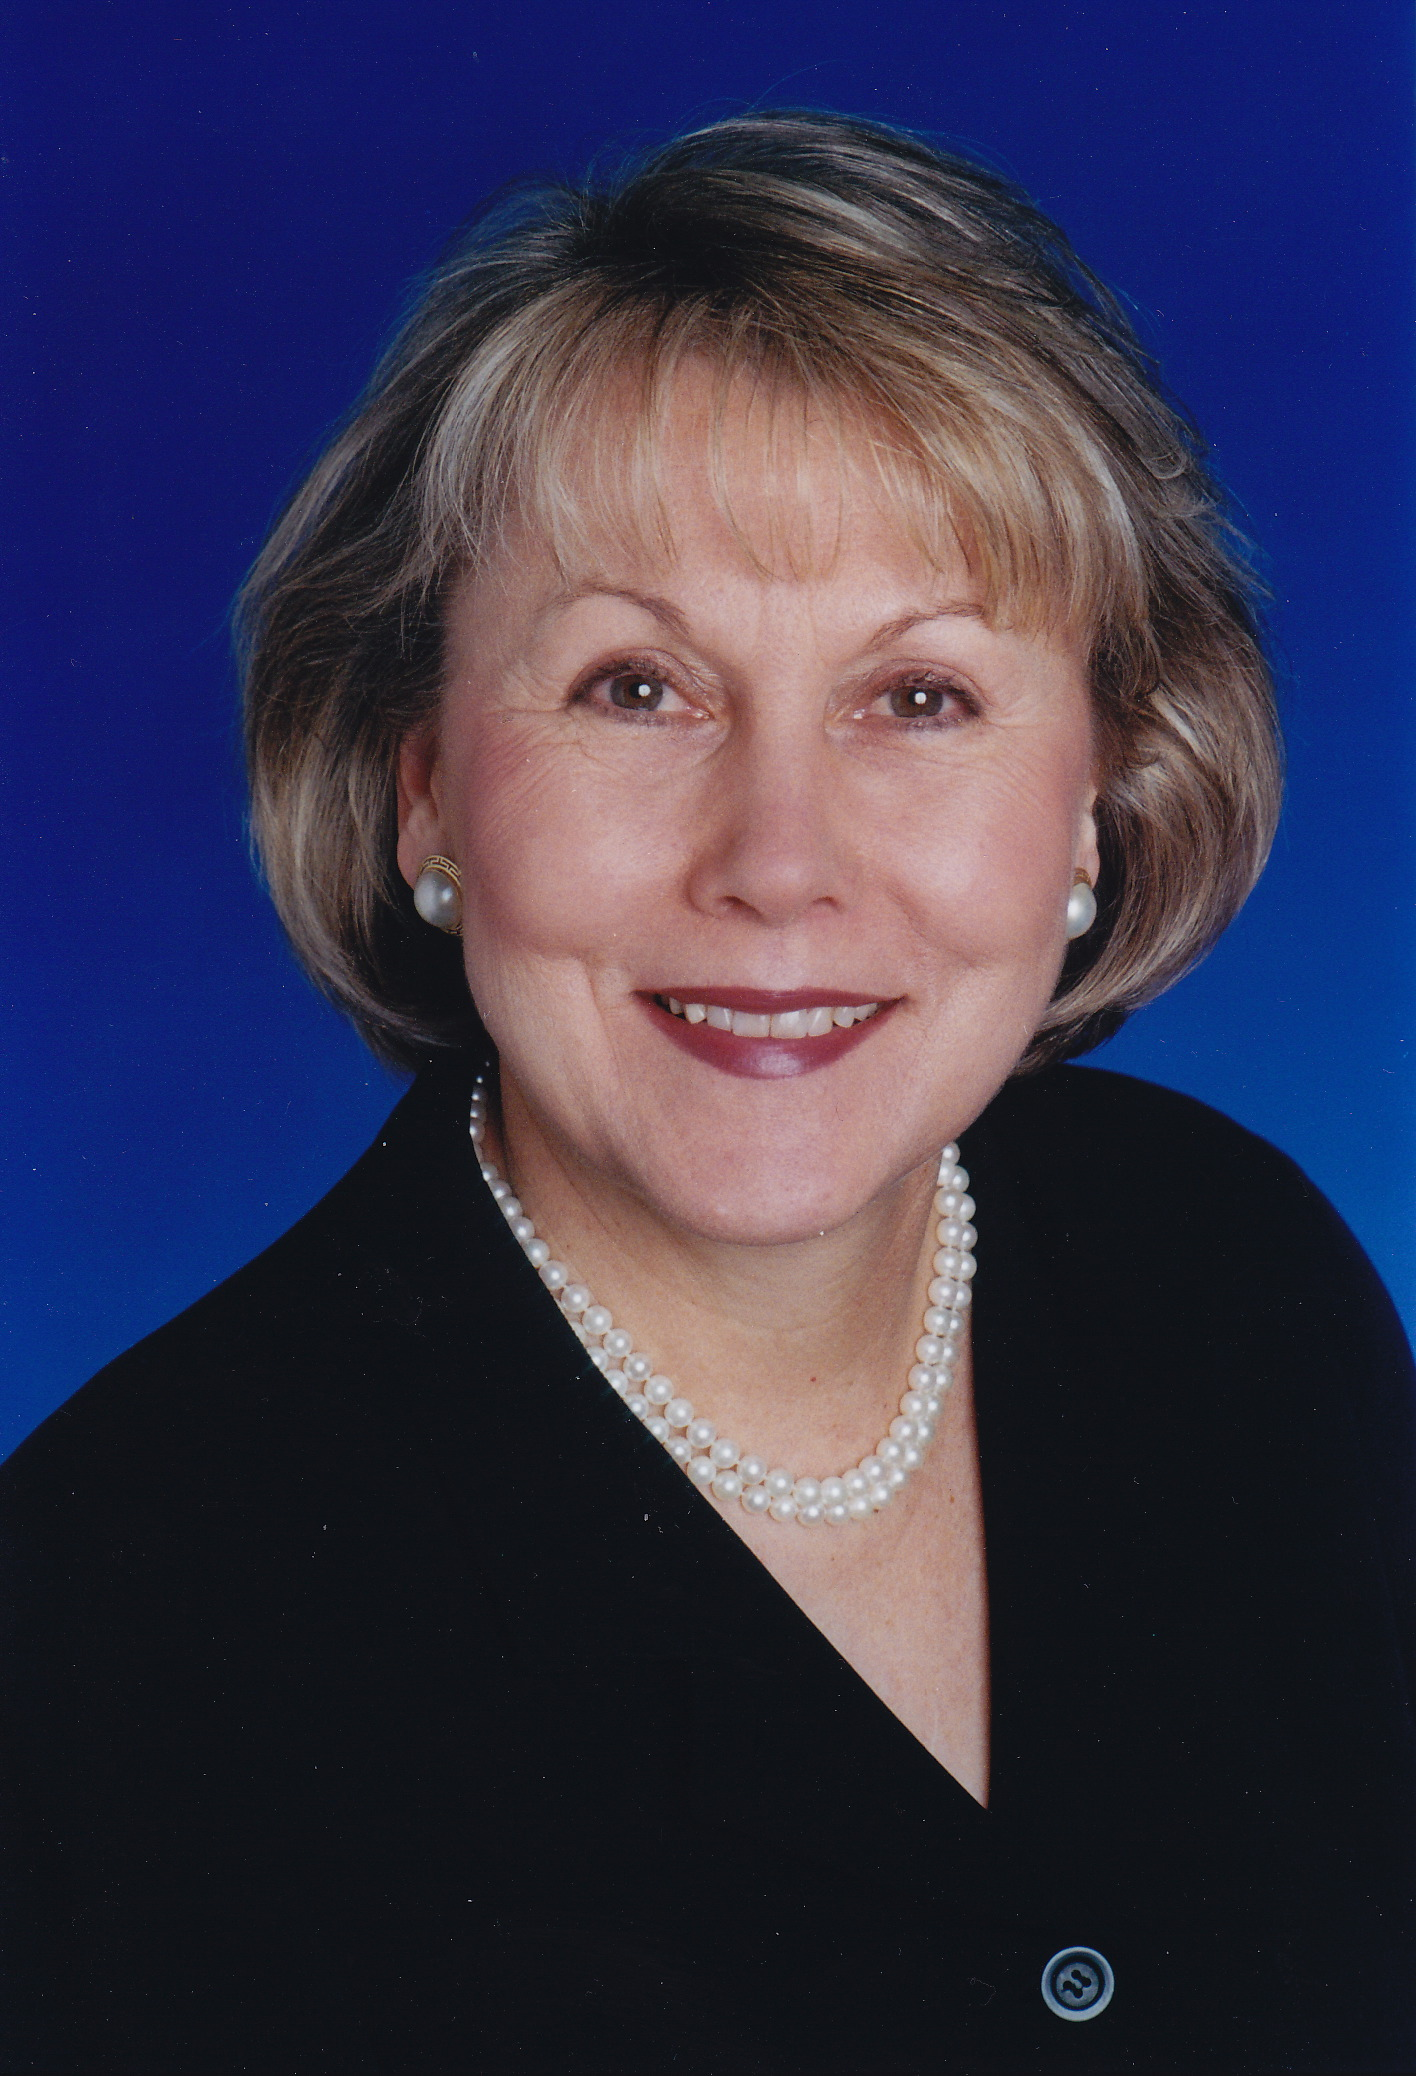 Suzanne L. Keeley, Ph.D.